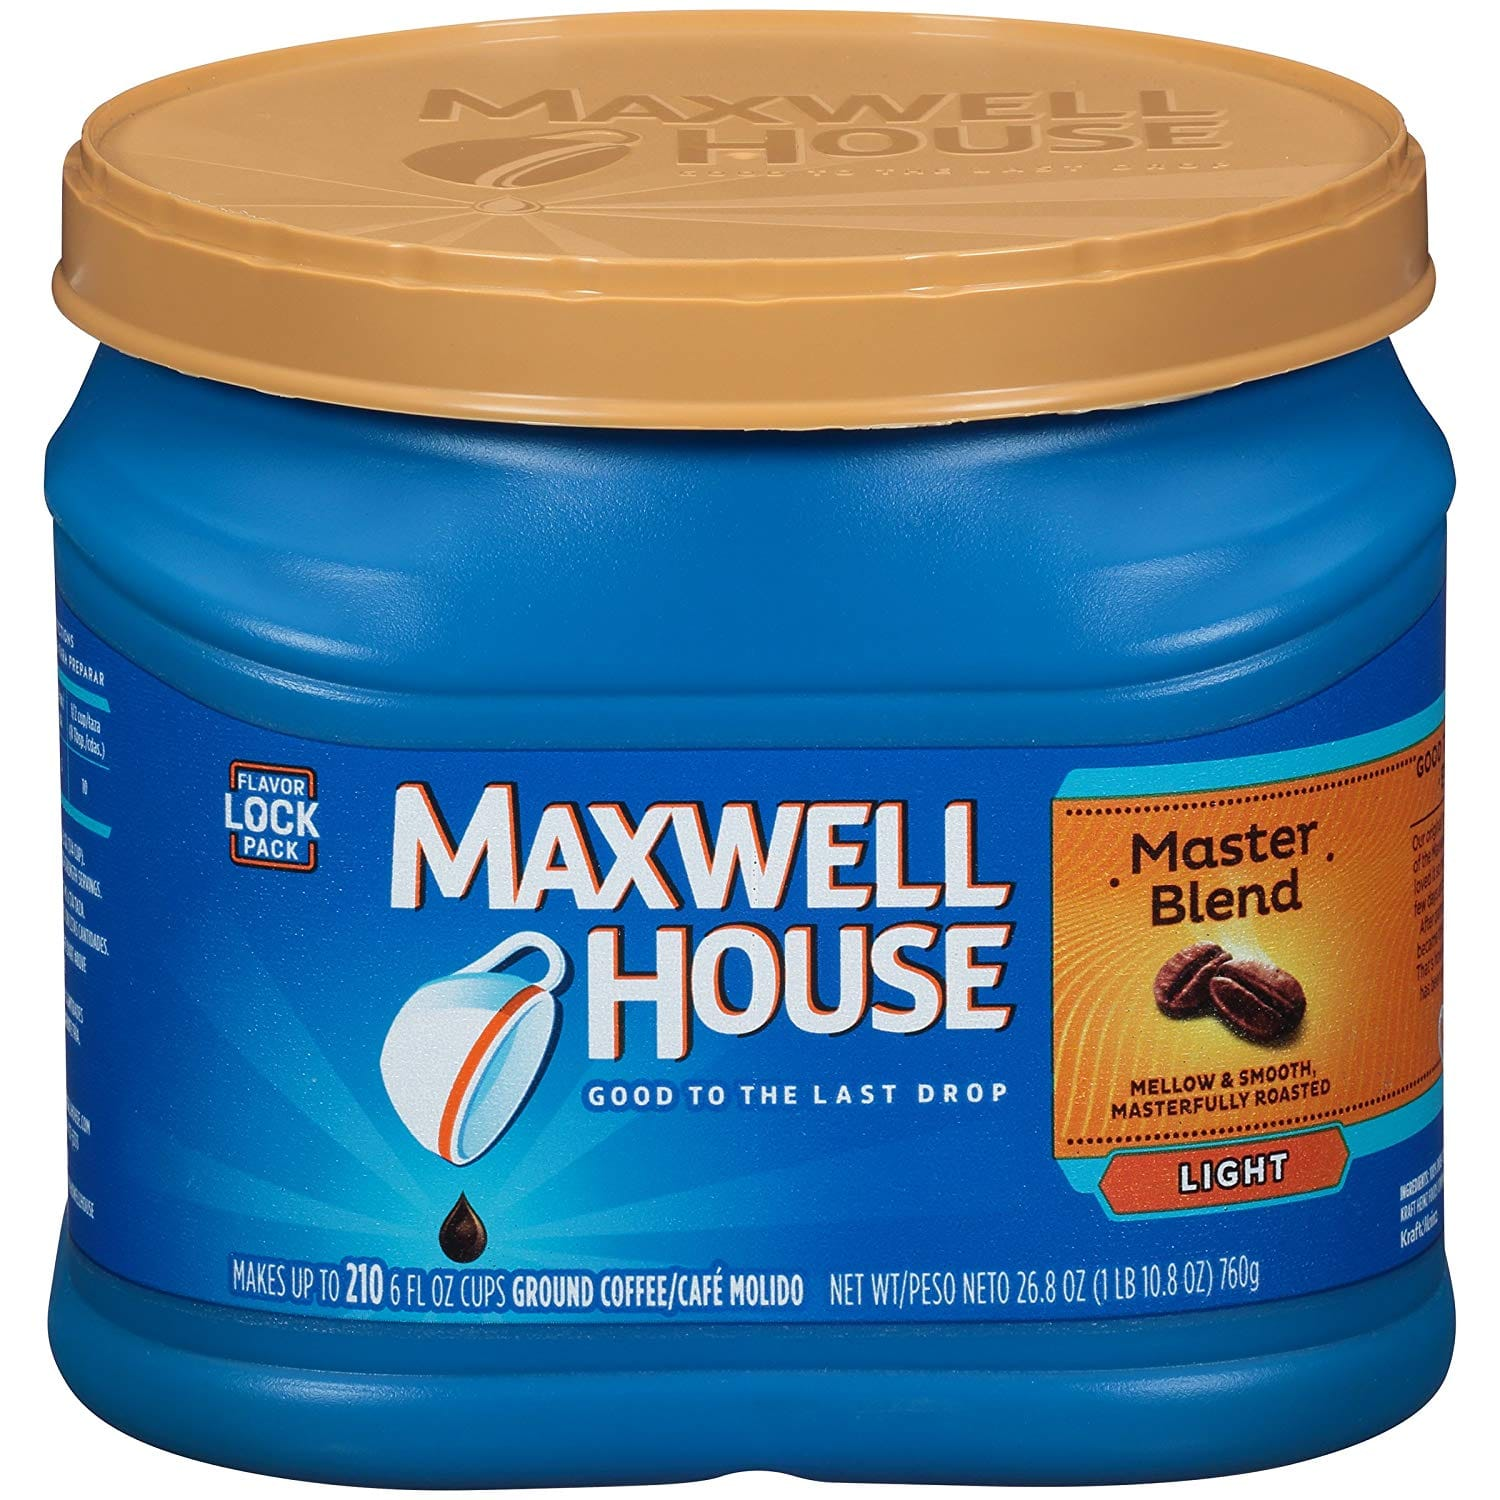 26.8oz Maxwell House Master Blend Ground Coffee (Light Roast) $4.15 5% or $3.71 15%